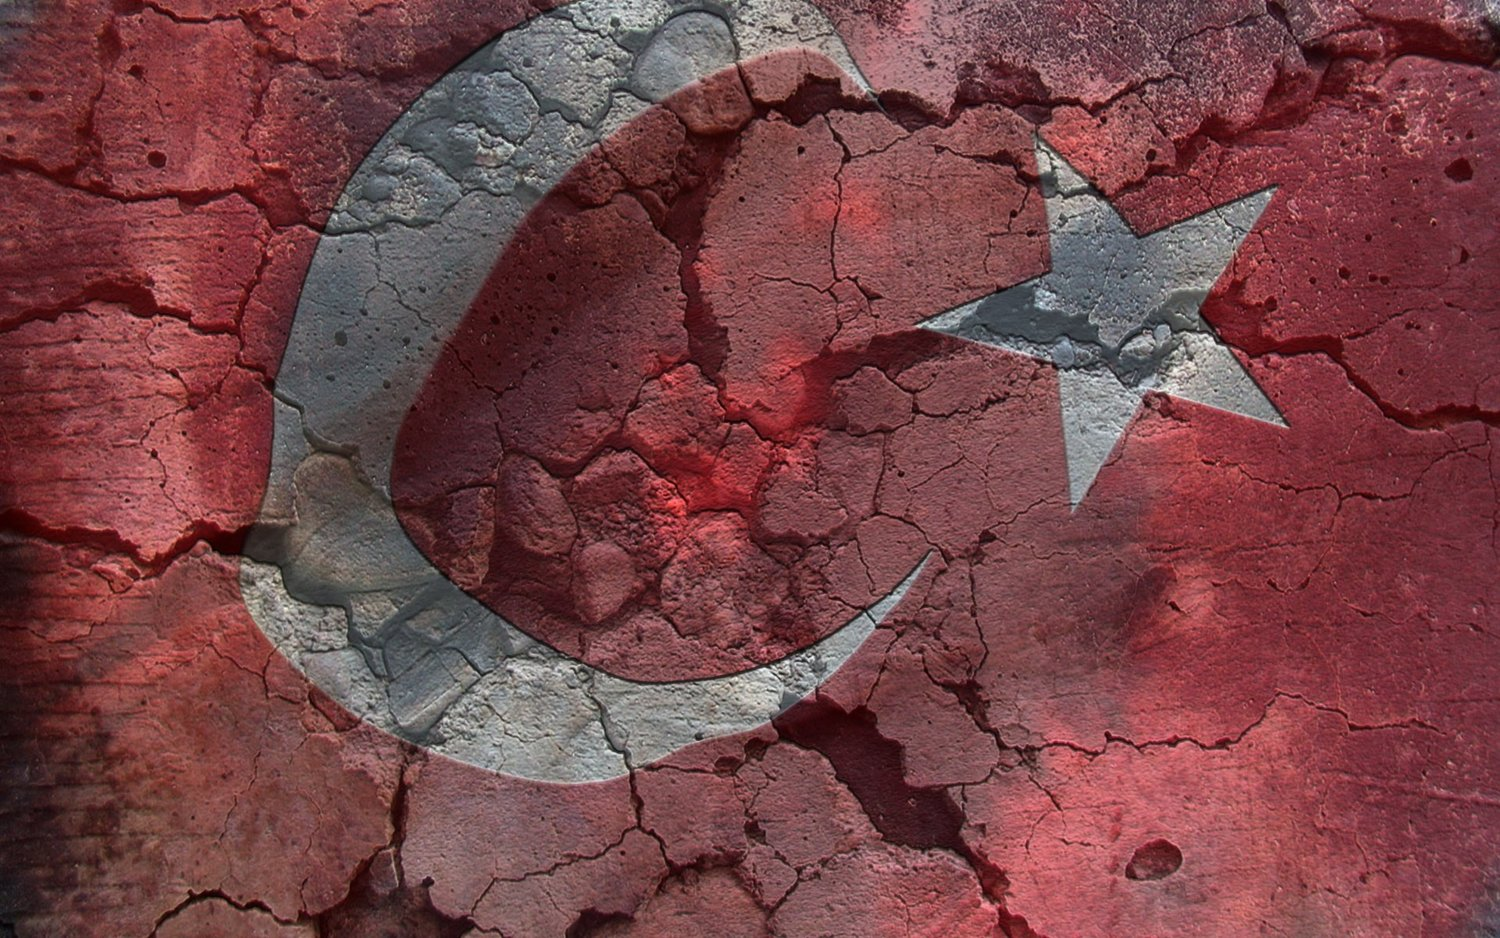 wallpaper-turkei-desktop-flag-turkish-flags-definition-high-PIC-FWP60010326 2.22.10 PM.jpg